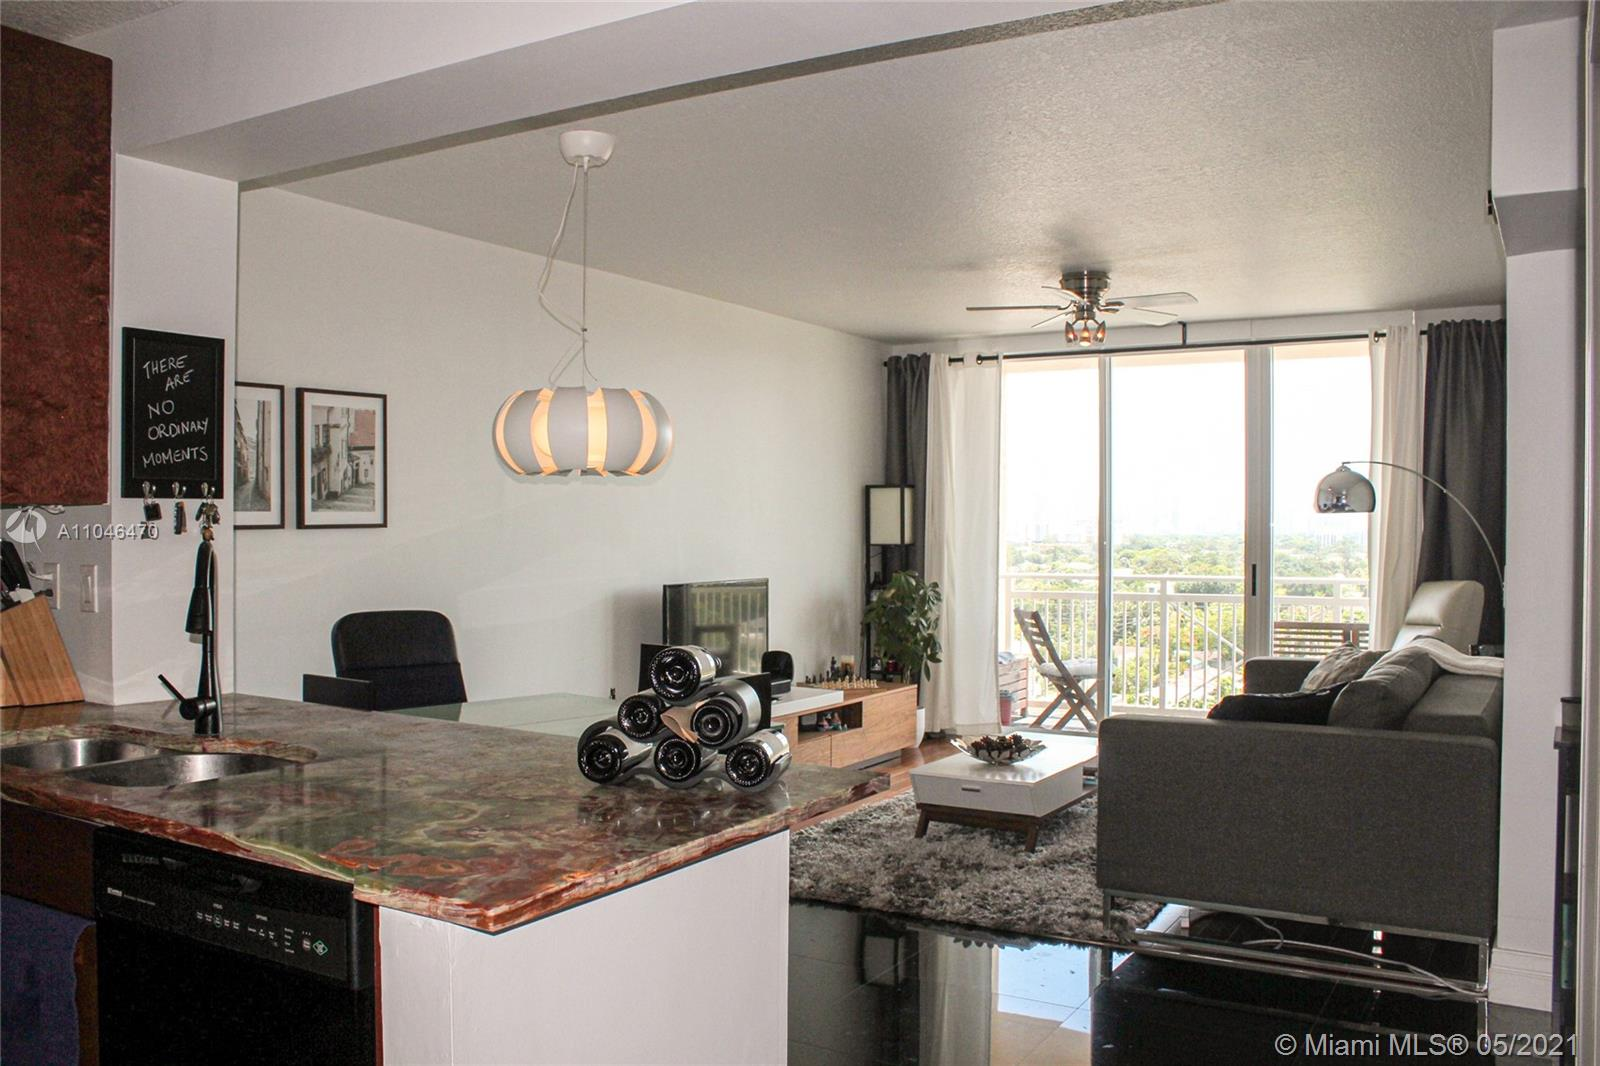 Tastefully remodeled unit at the DaVinci on Douglas condo with marble floors in the kitchen & bathroom, whilst the hard-wood floor complements the living room & bedroom. The kitchen has updated elements & a marble countertop. Living room & bedroom have blackout shades/curtains to help block out the Miami sun. A new A/C & water heater installed in March '20. The unit is on the 9th floor, overlooking the quiet streets, the pool, Douglas park and the breath-taking skyline of Brickell. The unit comes with 2 covered parking spots & a storage unit - a rarity for a one-bedroom unit! The building has a gym with sauna, a pool, biz & party room, 24h security & management on site. Located within walking distance from Miracle Mile in Coral Gables, short drive to MIA, UM, Merrick Park & Brickell.